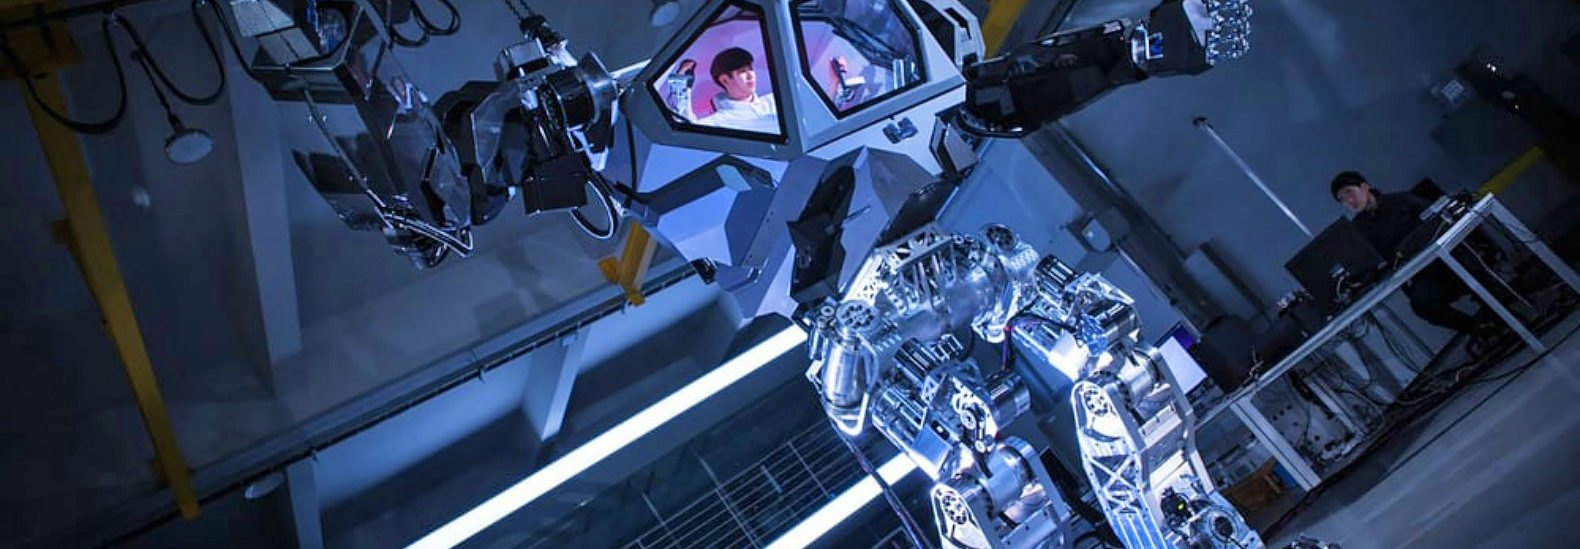 Hollywood Robot Designer Builds 13 Foot Mech Suit To Clean Up Fukushima